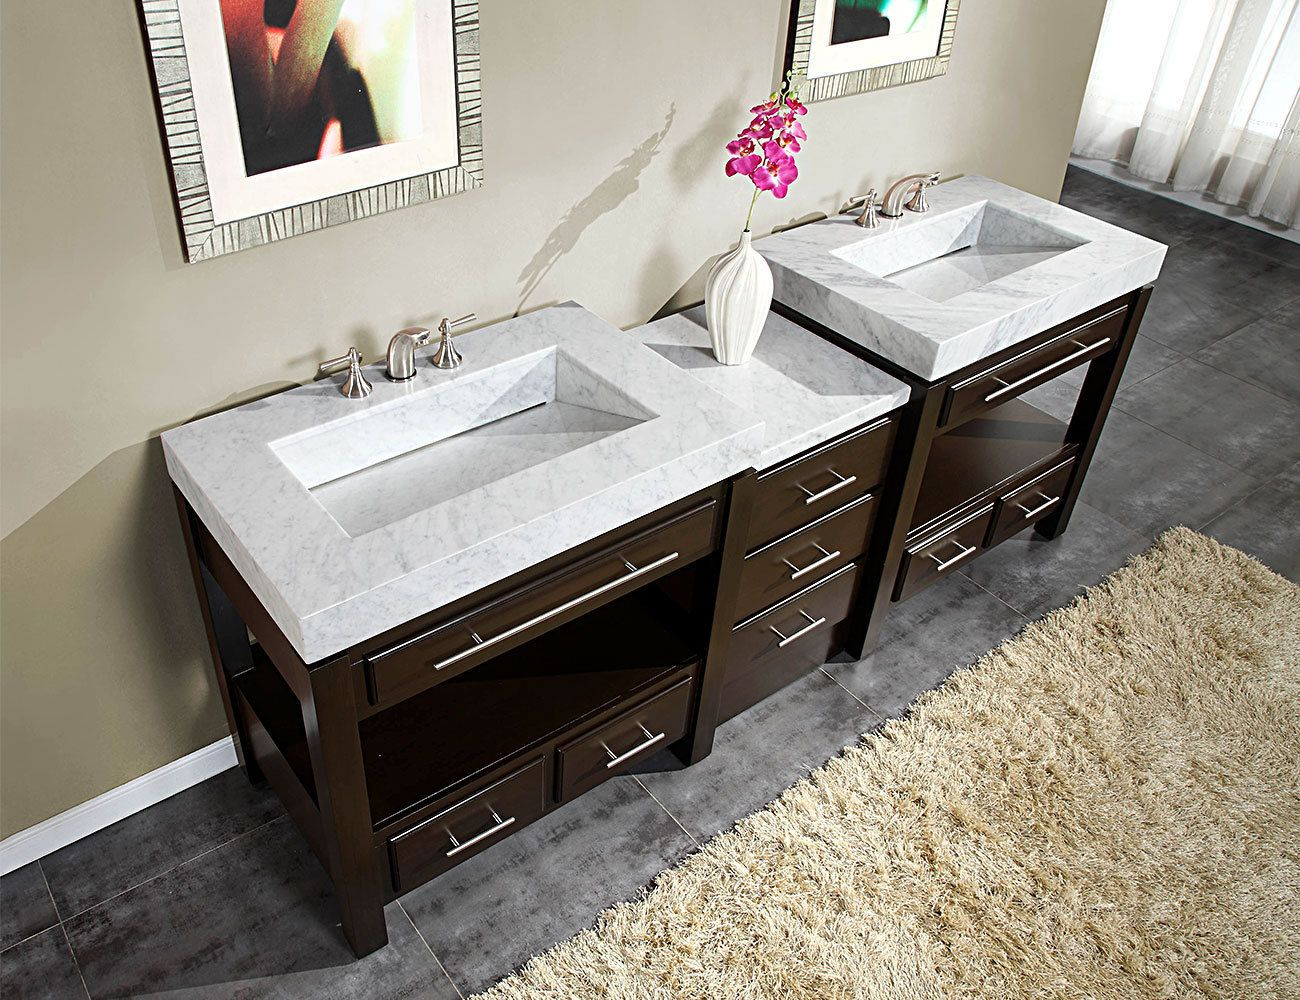 This Accord Contemporary 92  Moduler Bathroom Vanity Espresso Finish with  White Carrara Marble Top and. This Accord Contemporary 92  Moduler Bathroom Vanity Espresso